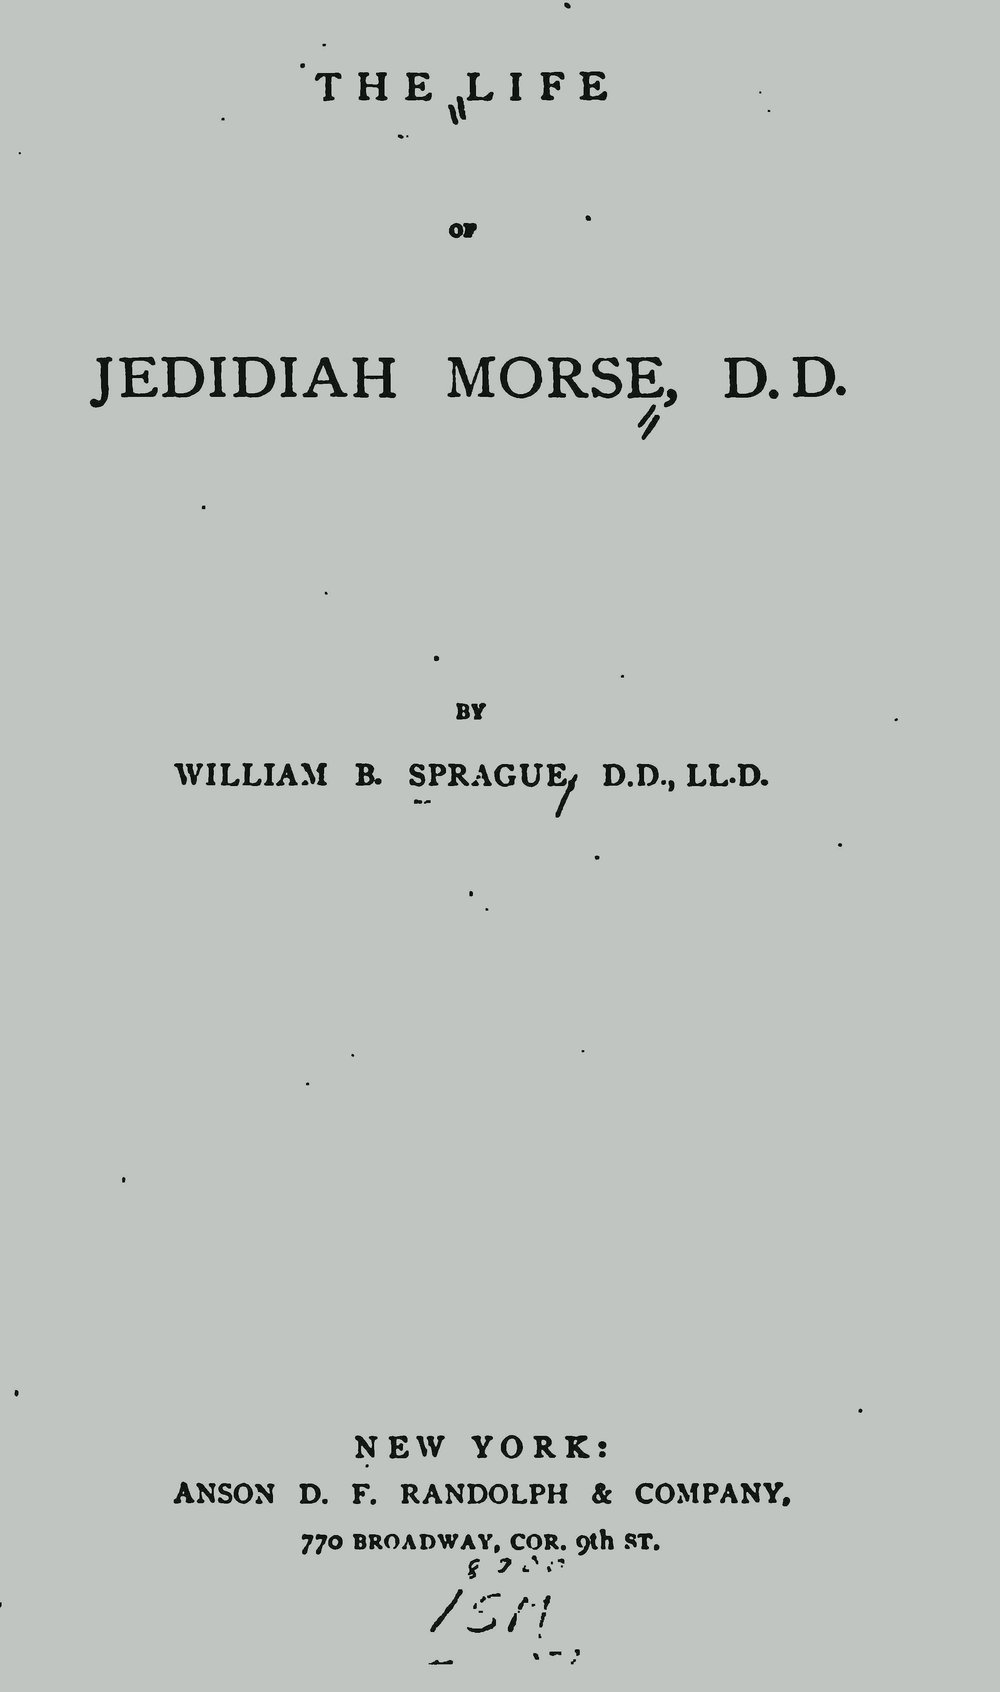 Sprague, William Buell, The Life of Jedidiah Morse Title Page.jpg